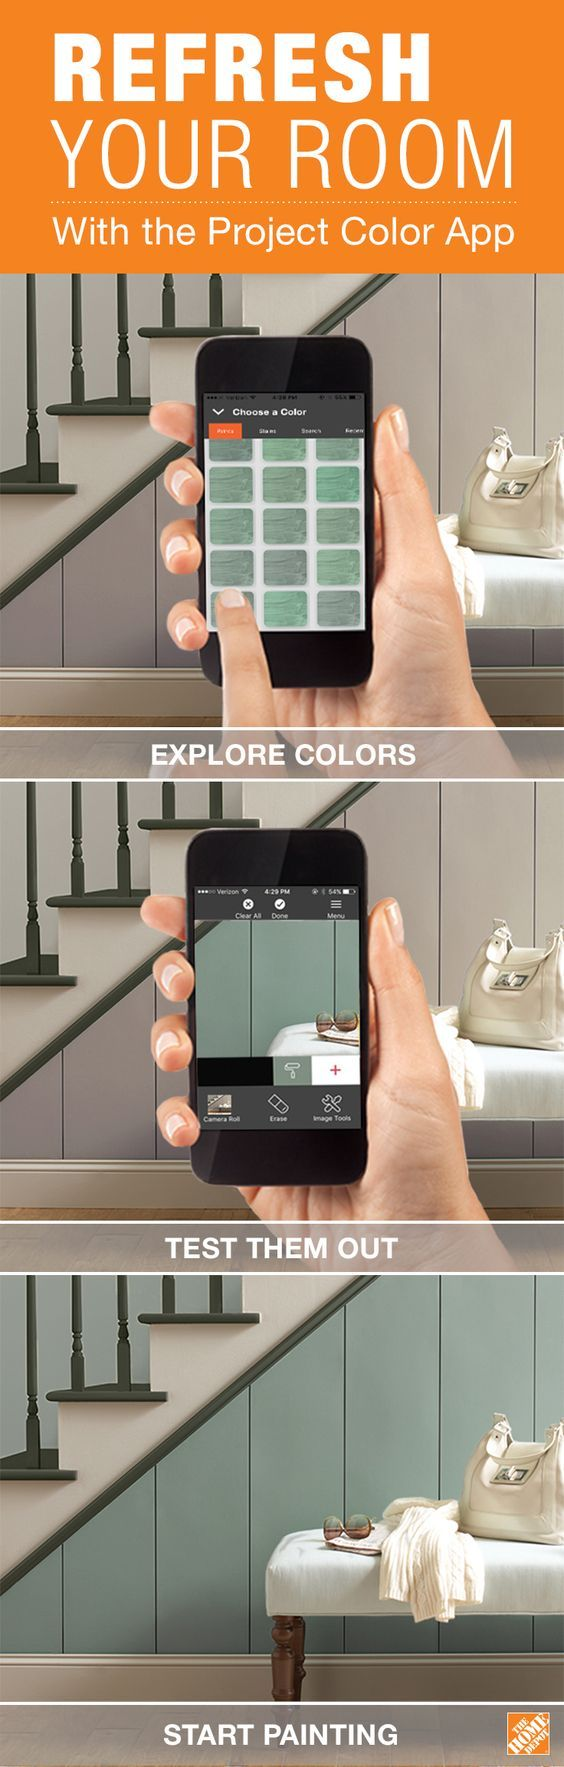 """Search """"Project Color by The Home Depot"""" on your iPhone or Android to download the app today! The Project Color app by The Home Depot allows you to try out paint colors virtually. When you're thinking about redecorating a room or refreshing your walls, consult the app to test out your new color choices, like BEHR Underground Gardens pictured here. Download the app, and start trying out new paint colors now."""